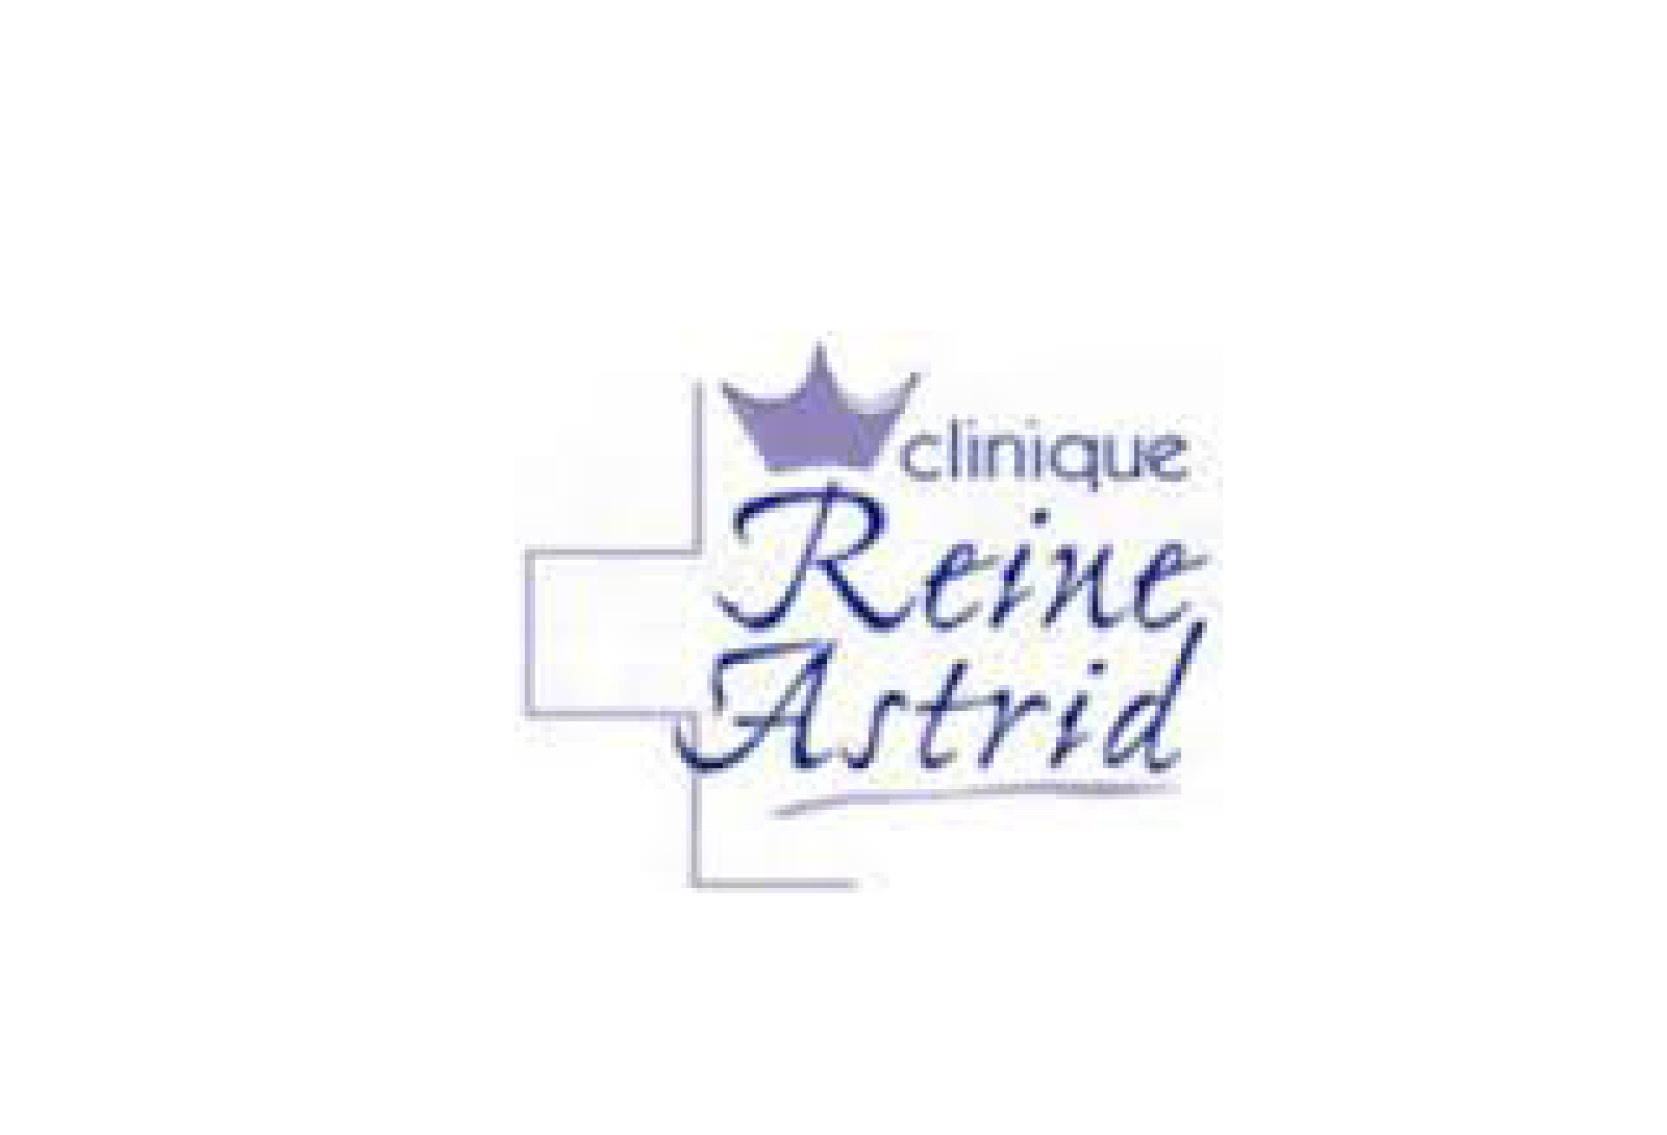 Clinique Reine Astrid